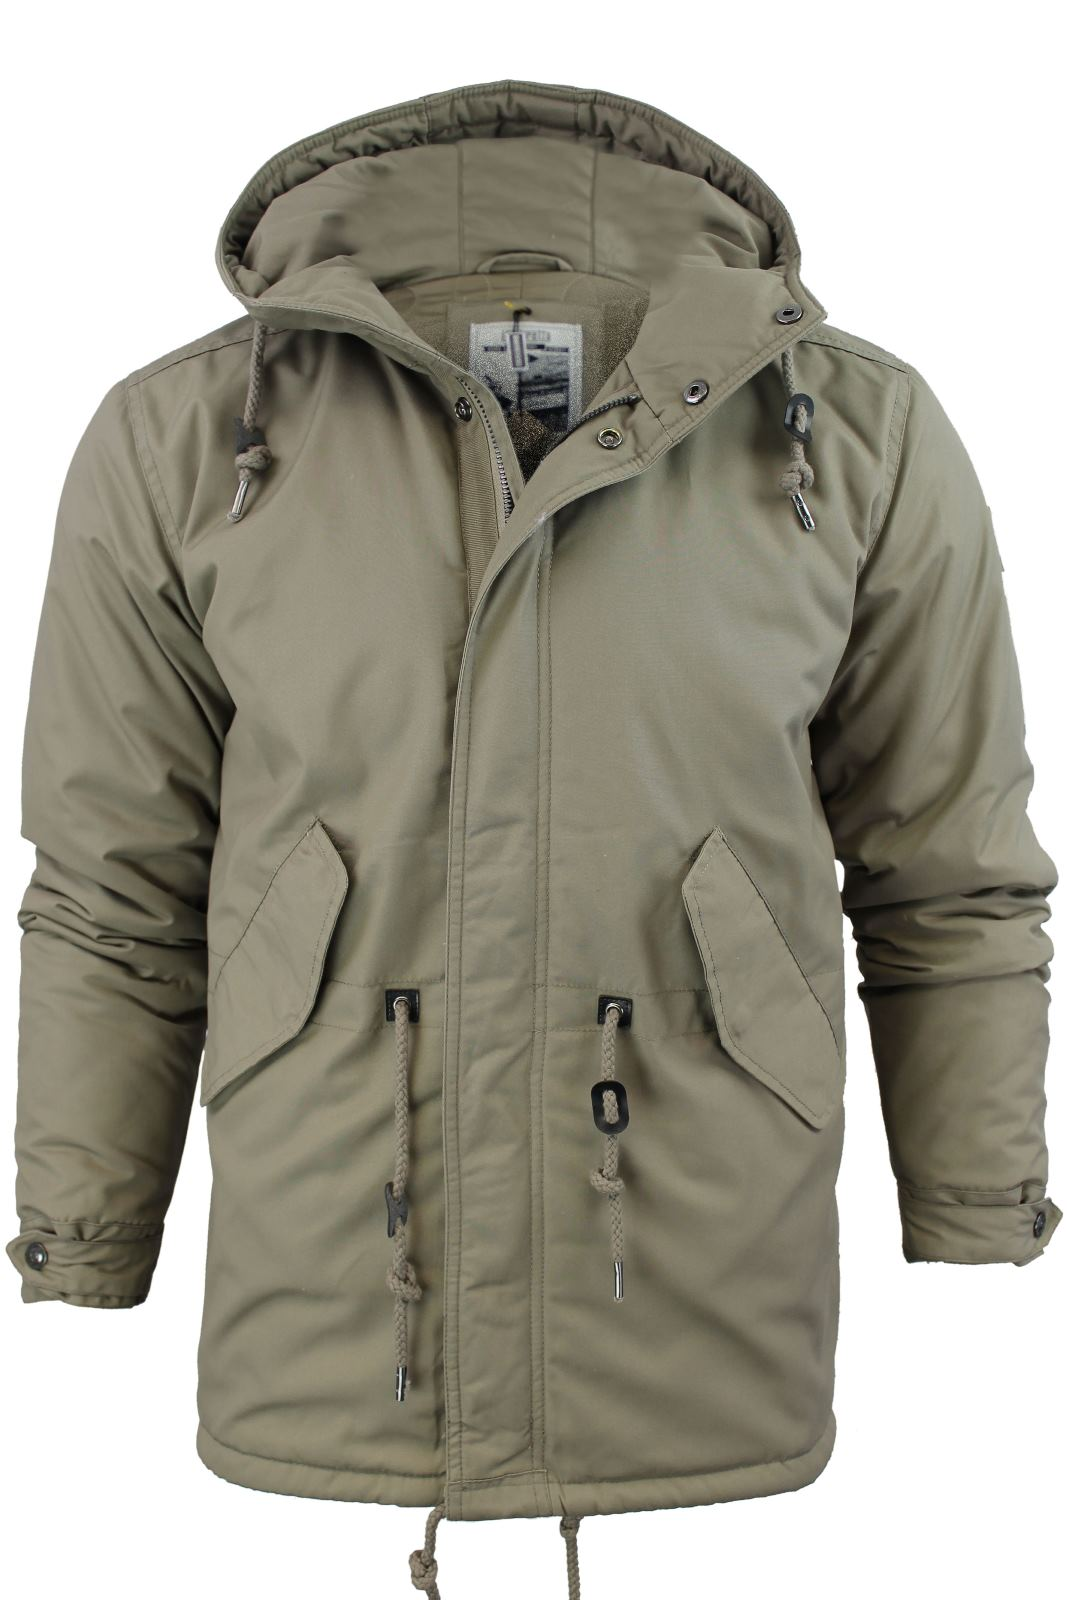 Discover men's parka coats and parka jackets at ASOS. From black parkas, camo parkas and fur lined parkas to hooded and waterproof parka jackets. Shop now. Criminal Damage parka jacket in khaki with fleece hood. $ New Look puffer jacket in green check. $ Bellfield Fleece Lined Parka With Hood In Khaki.